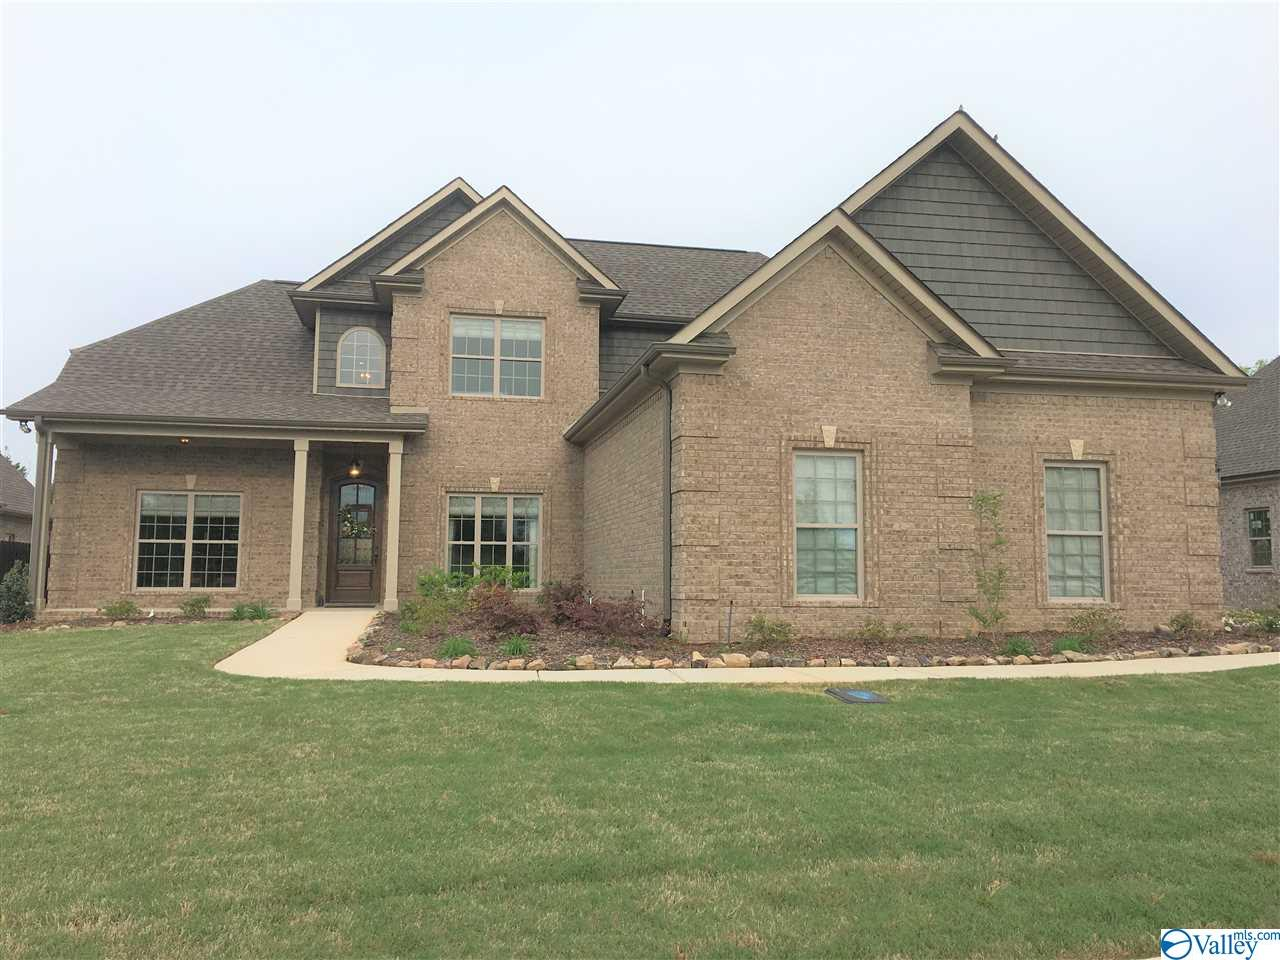 22543 BLUFFVIEW DRIVE, ATHENS, AL 35613